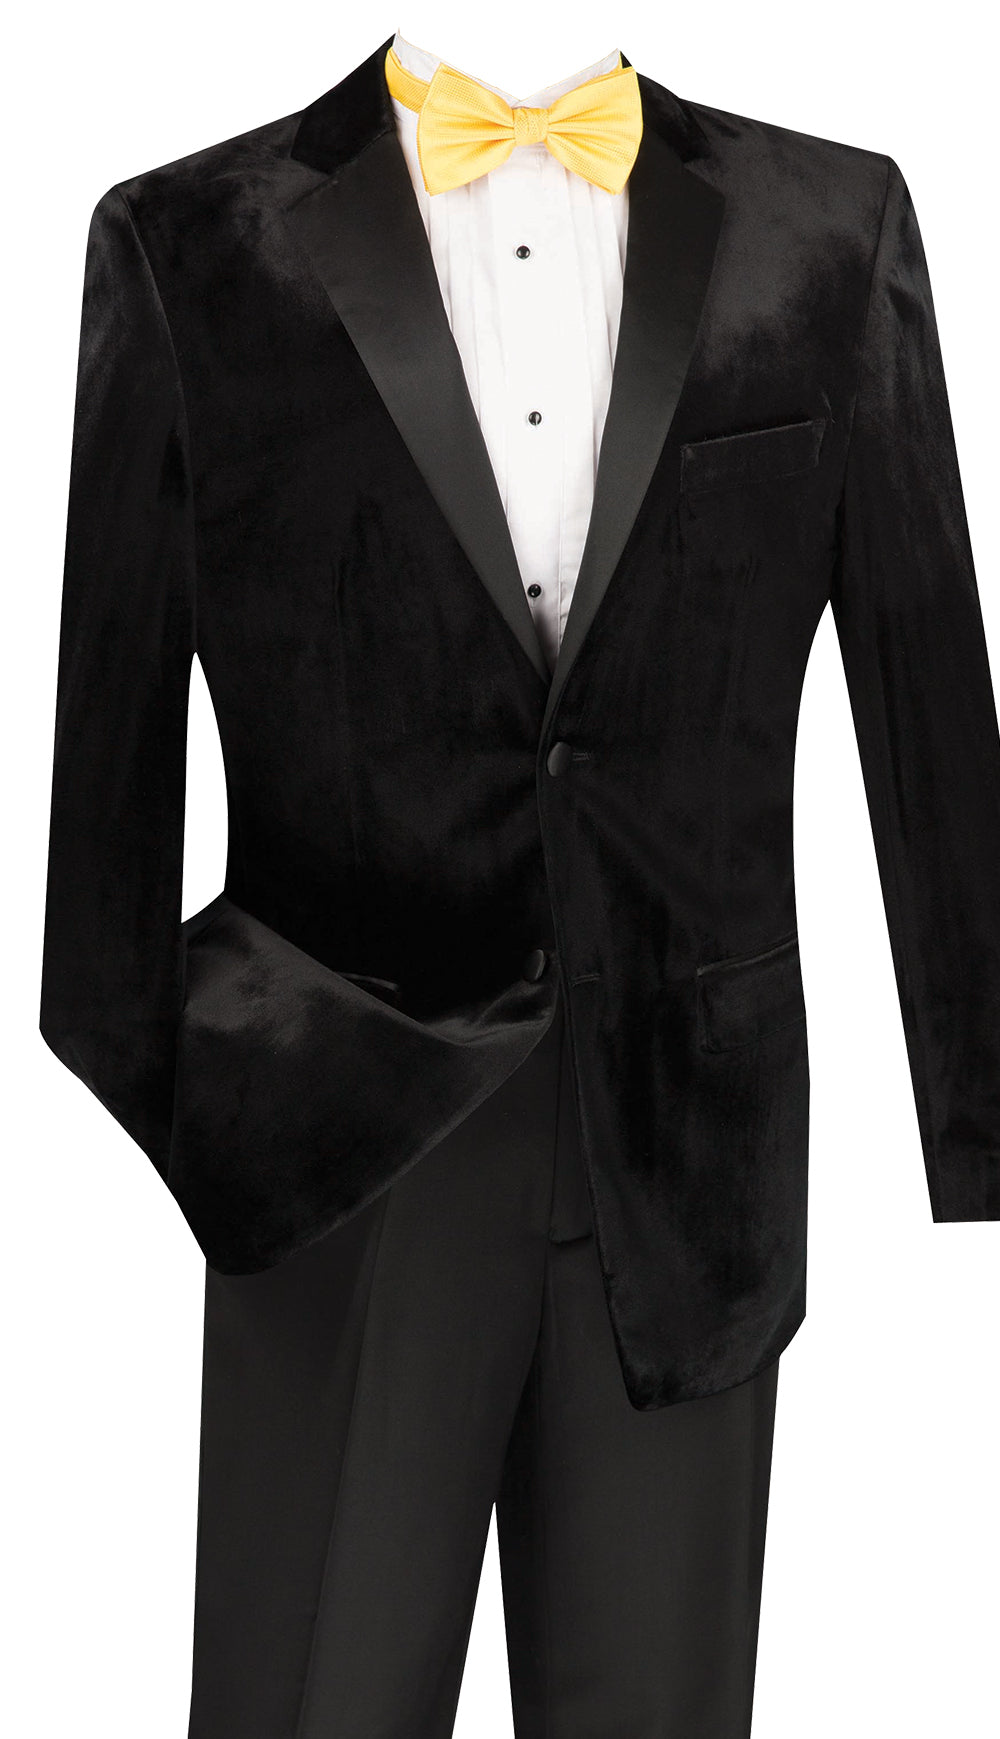 Vinci Tuxedo T-SV-Black - Church Suits For Less